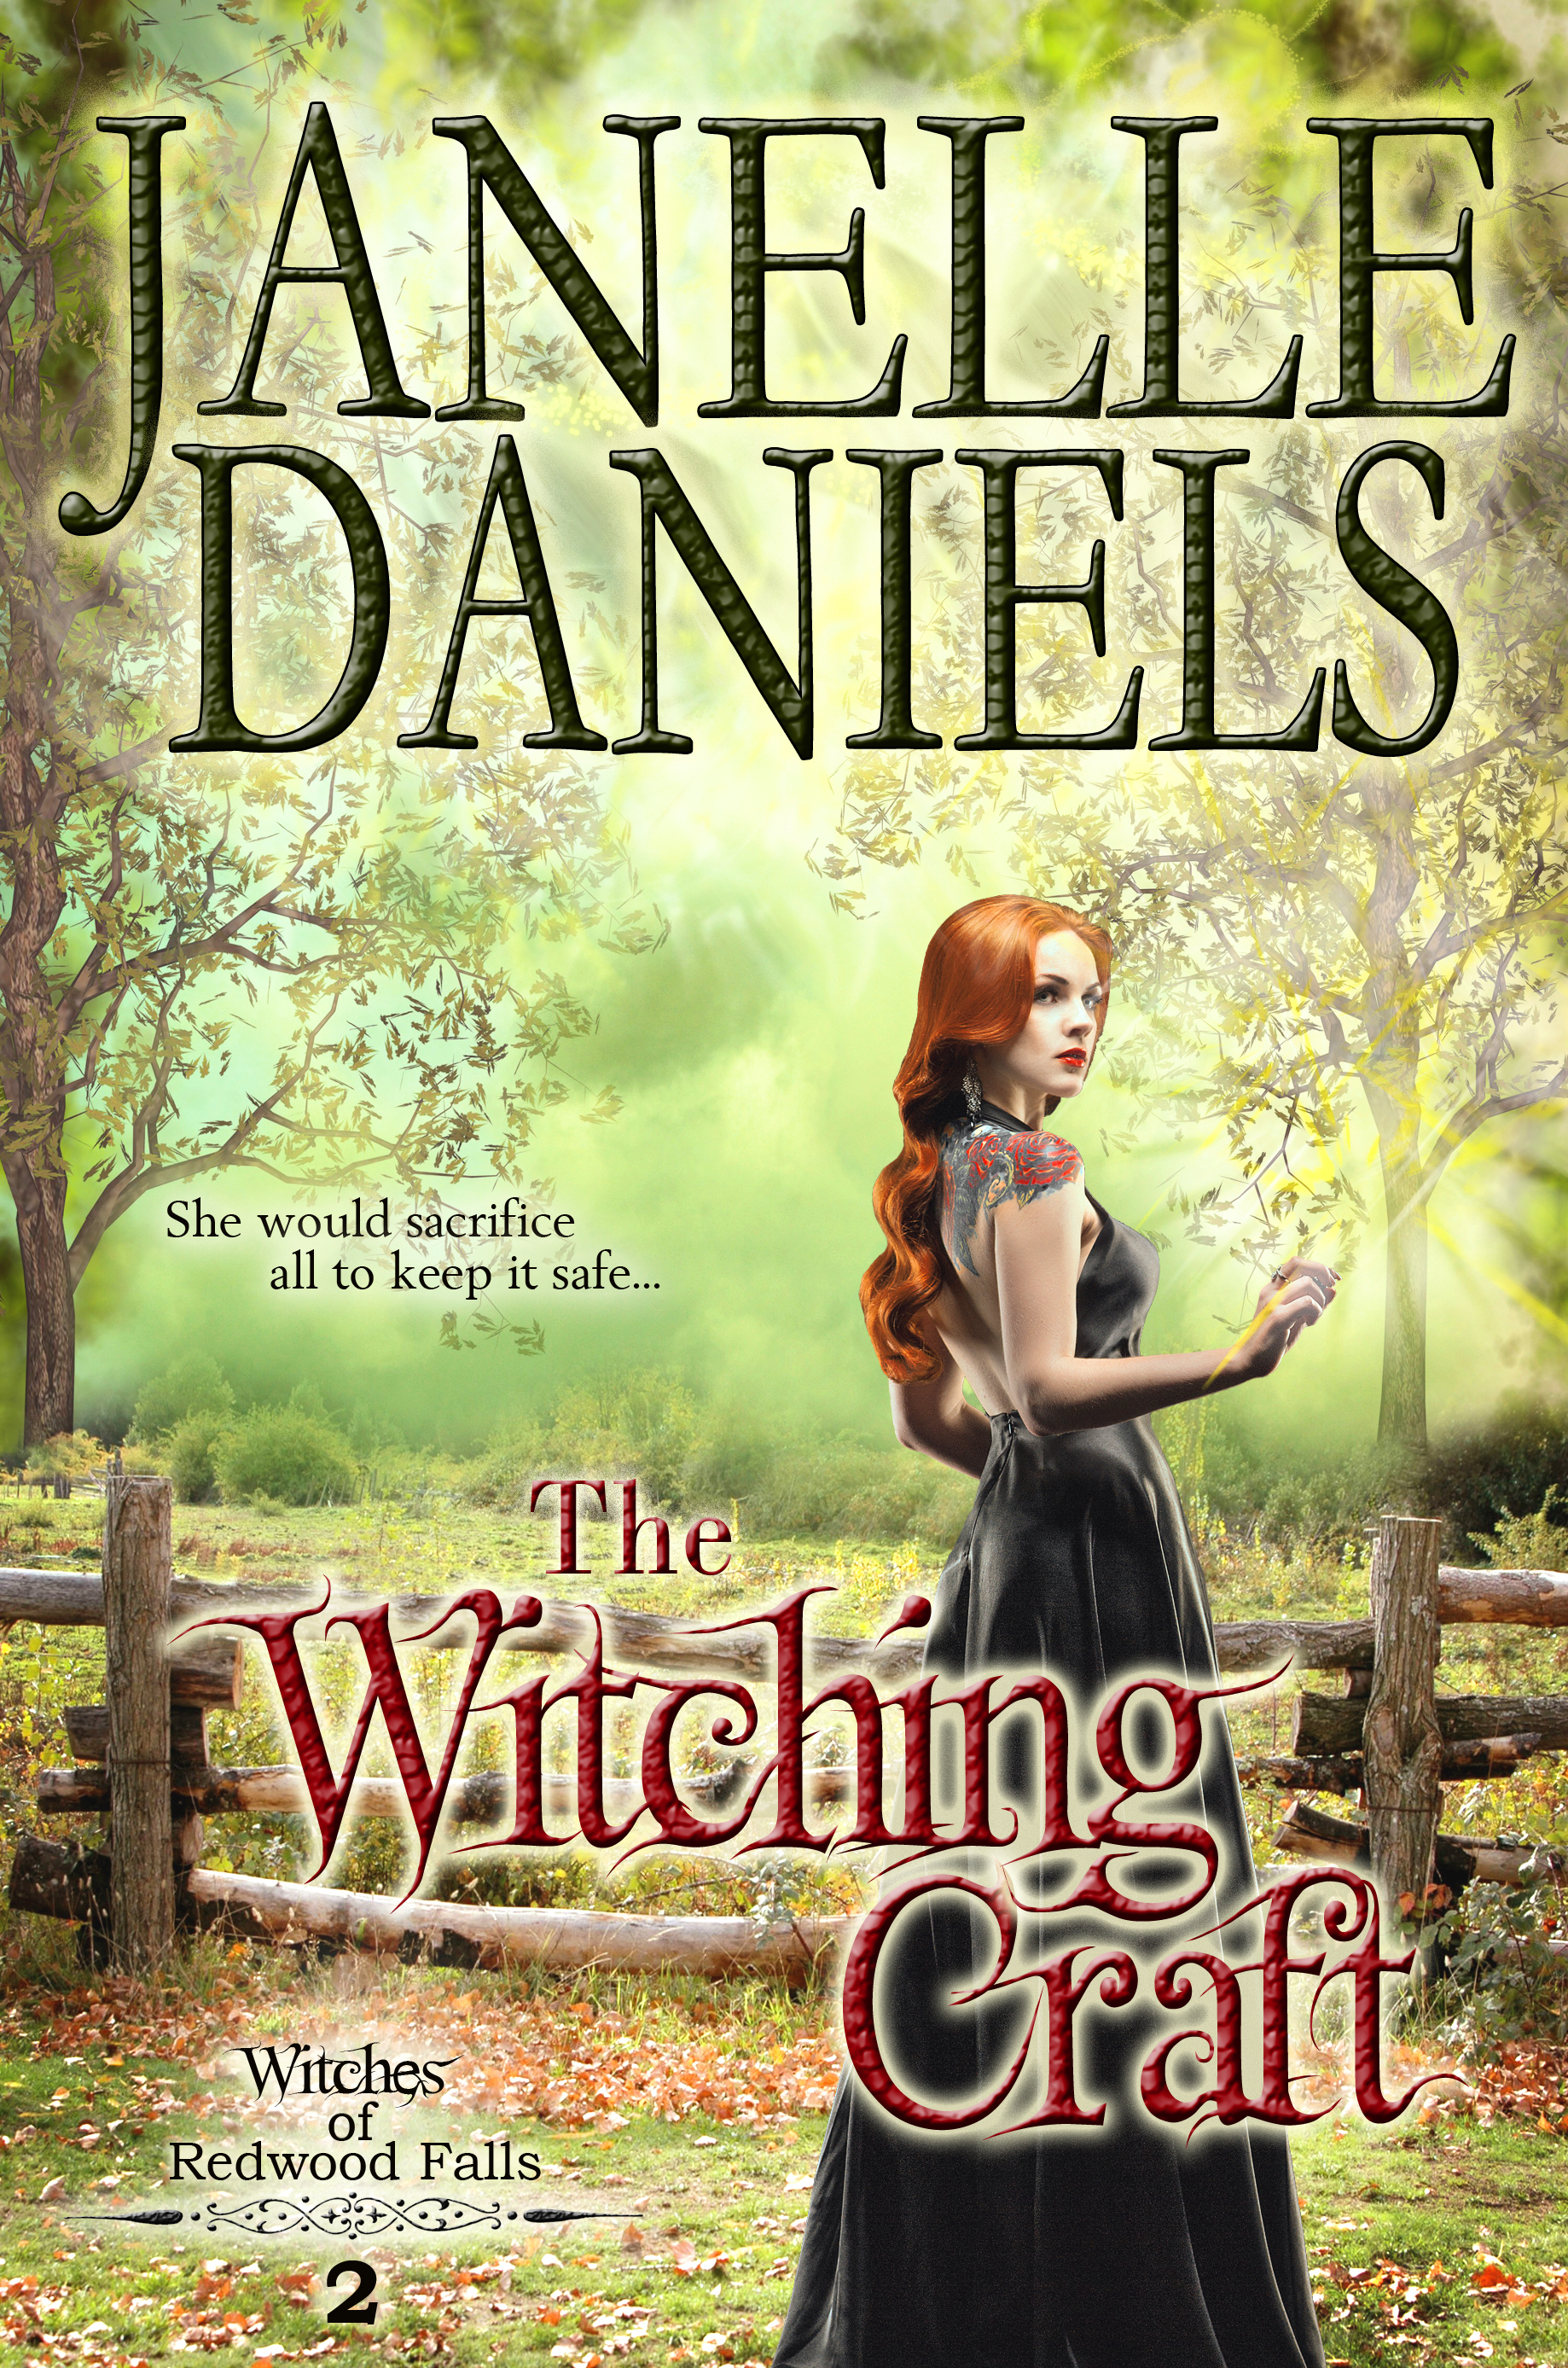 The Witching Craft (The Witches of Redwood Falls - Book 2) Janelle Daniels